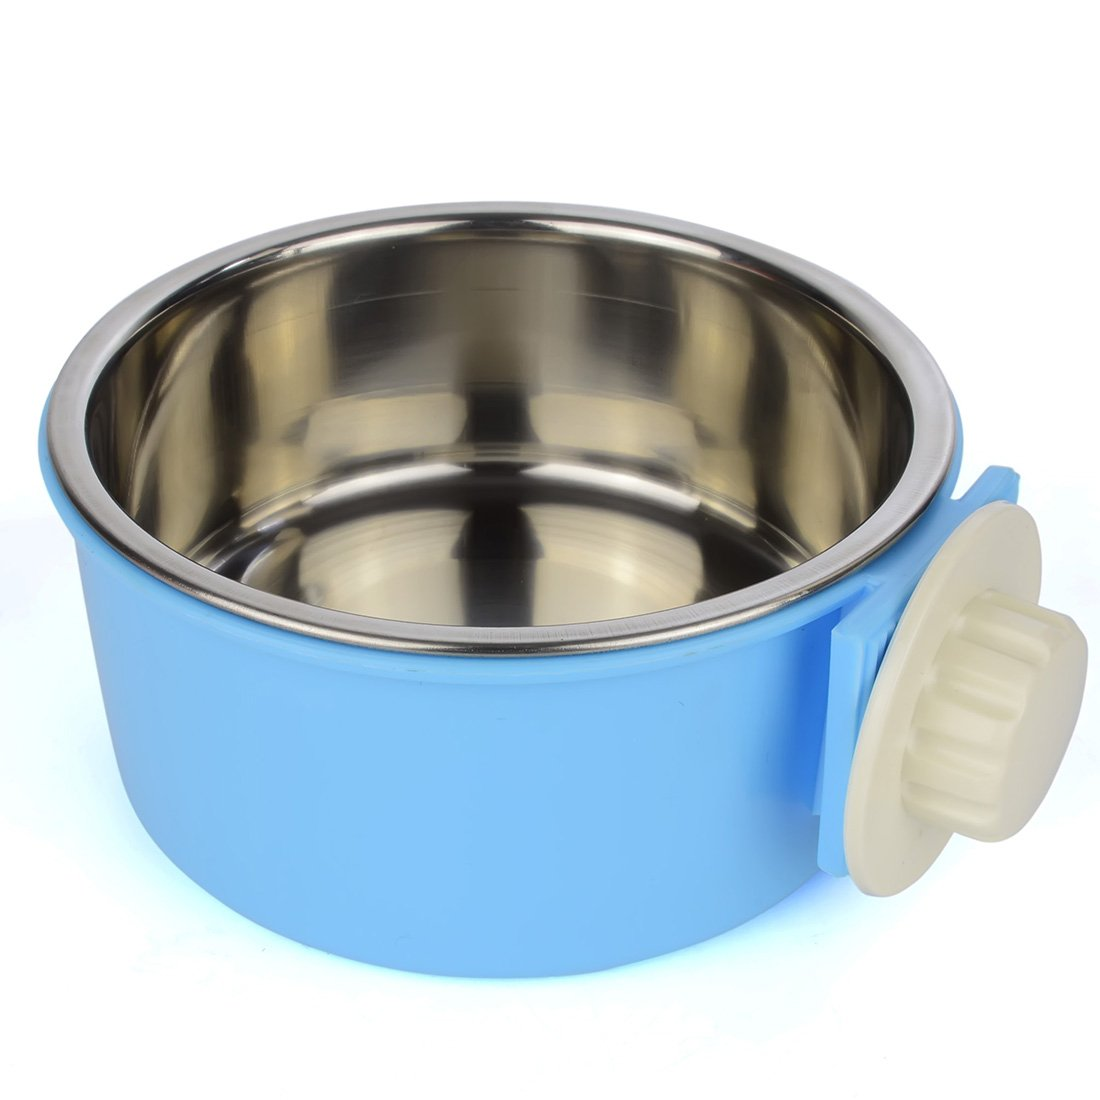 GreeSuit Pet Bowl Water Food Bowls for Dog Cat Small Animals Hanging Removable Cage Feeding Stations - Stainless Steel, Blue (blue)